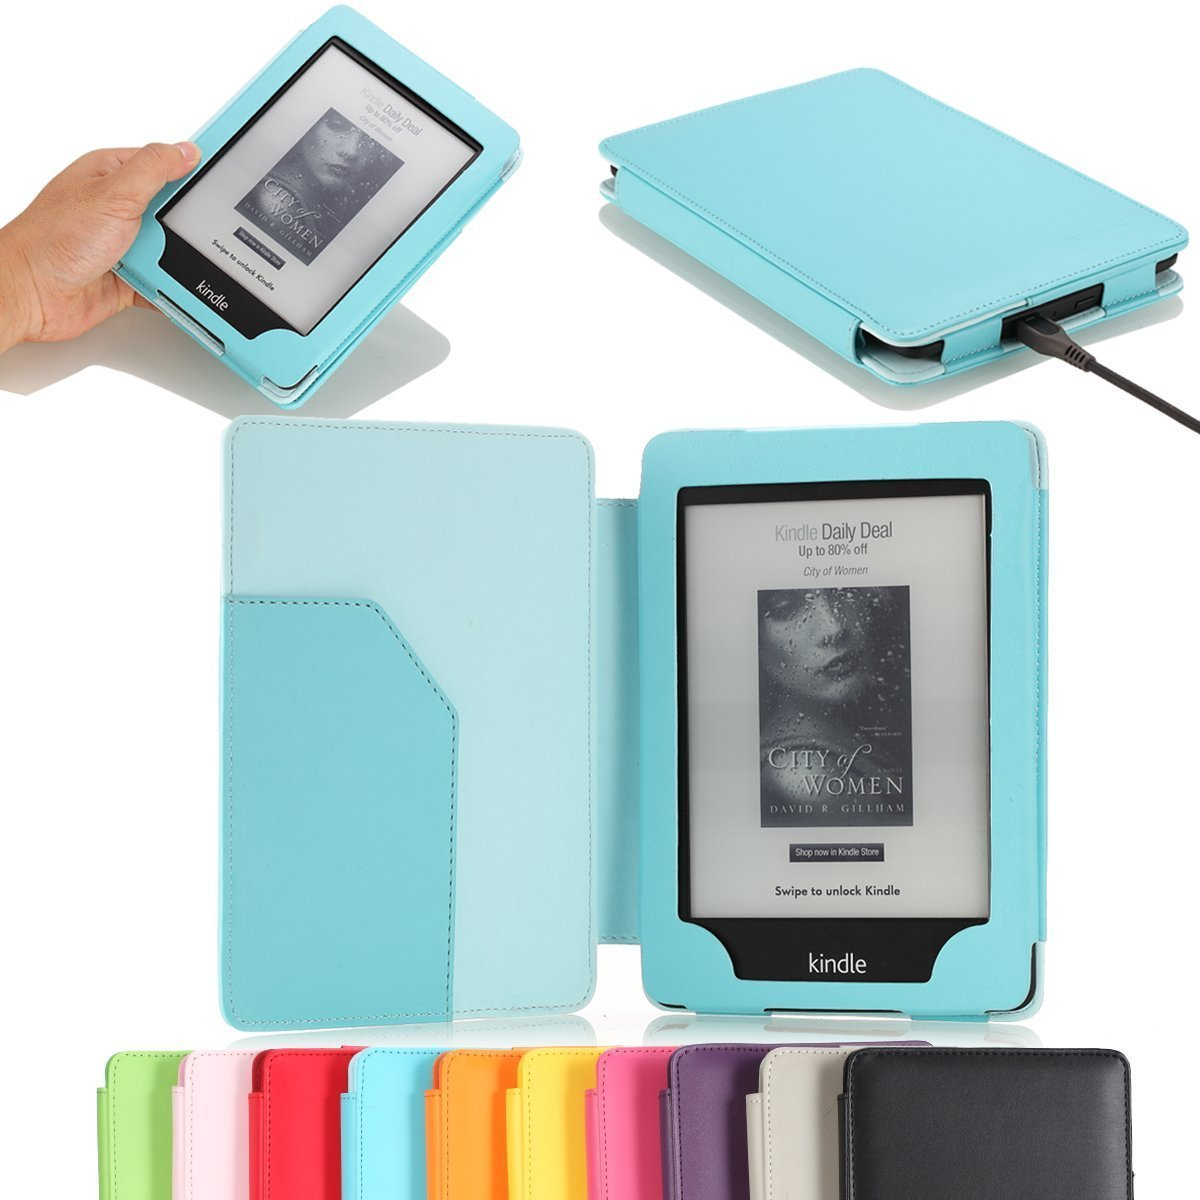 Kindle Paperwhite Moko Cover - The Book Nut: A Book Lover's Guide